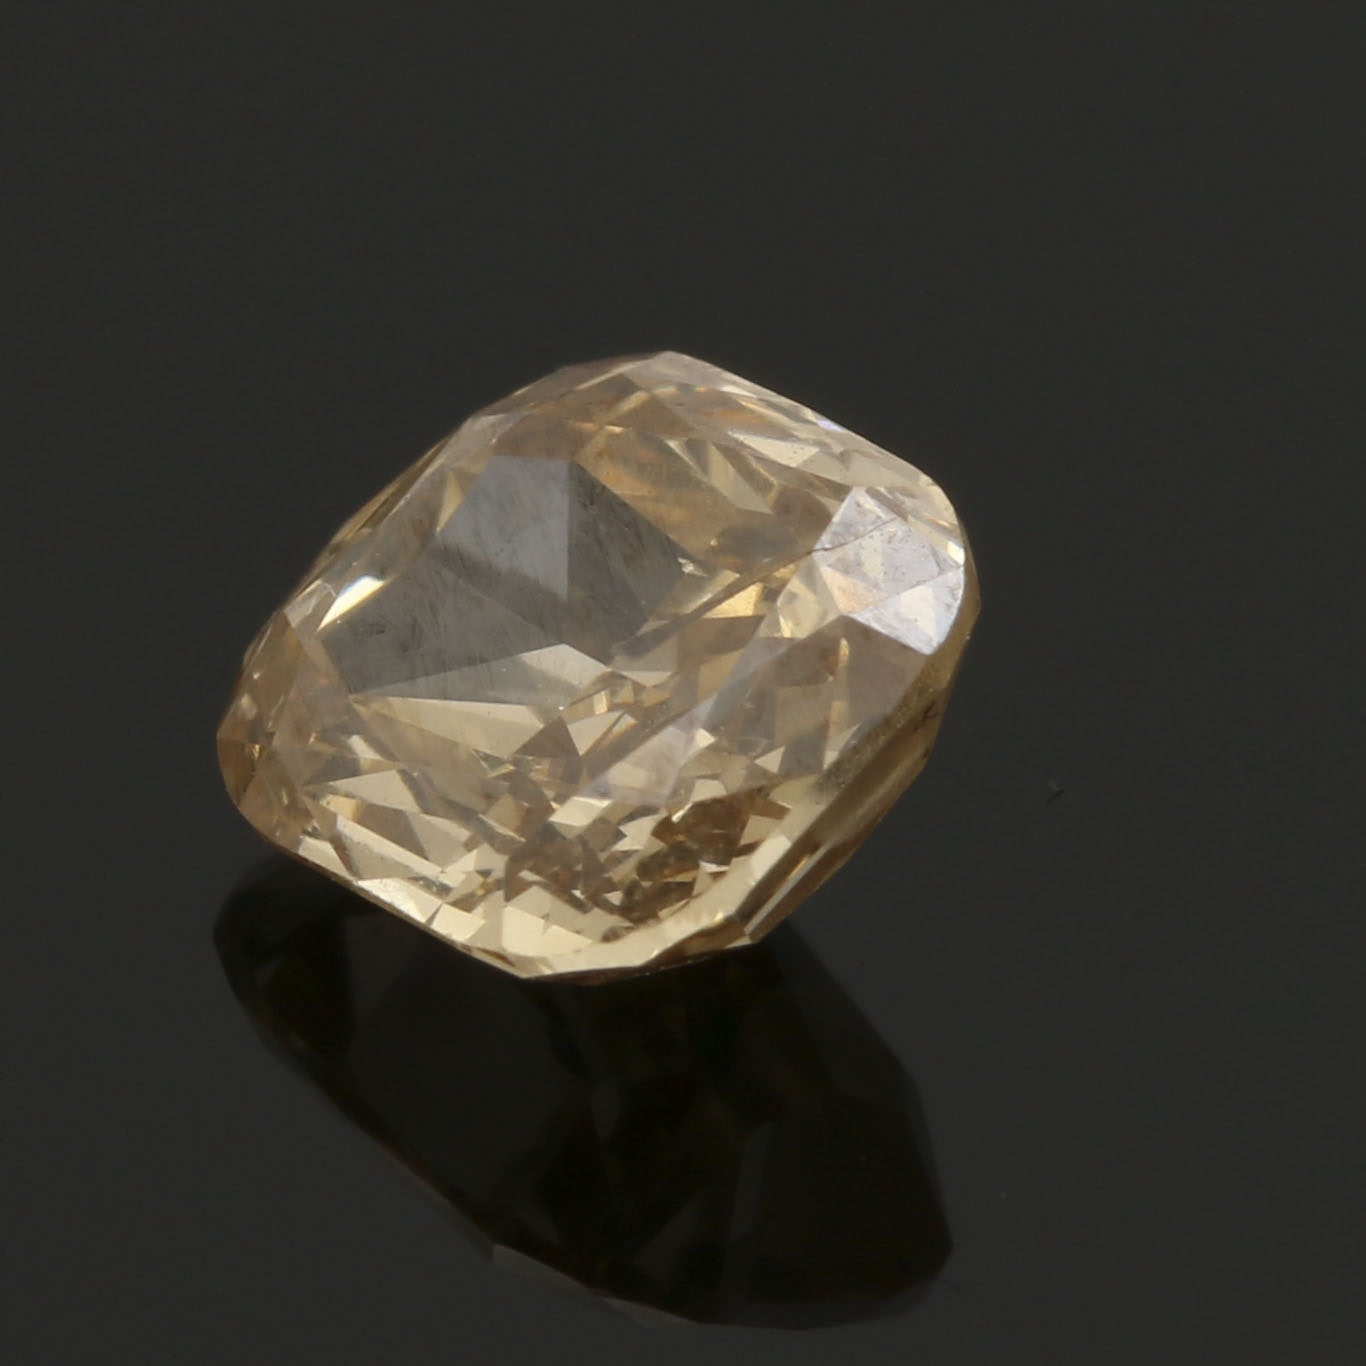 Loose 1.10 CT Diamond